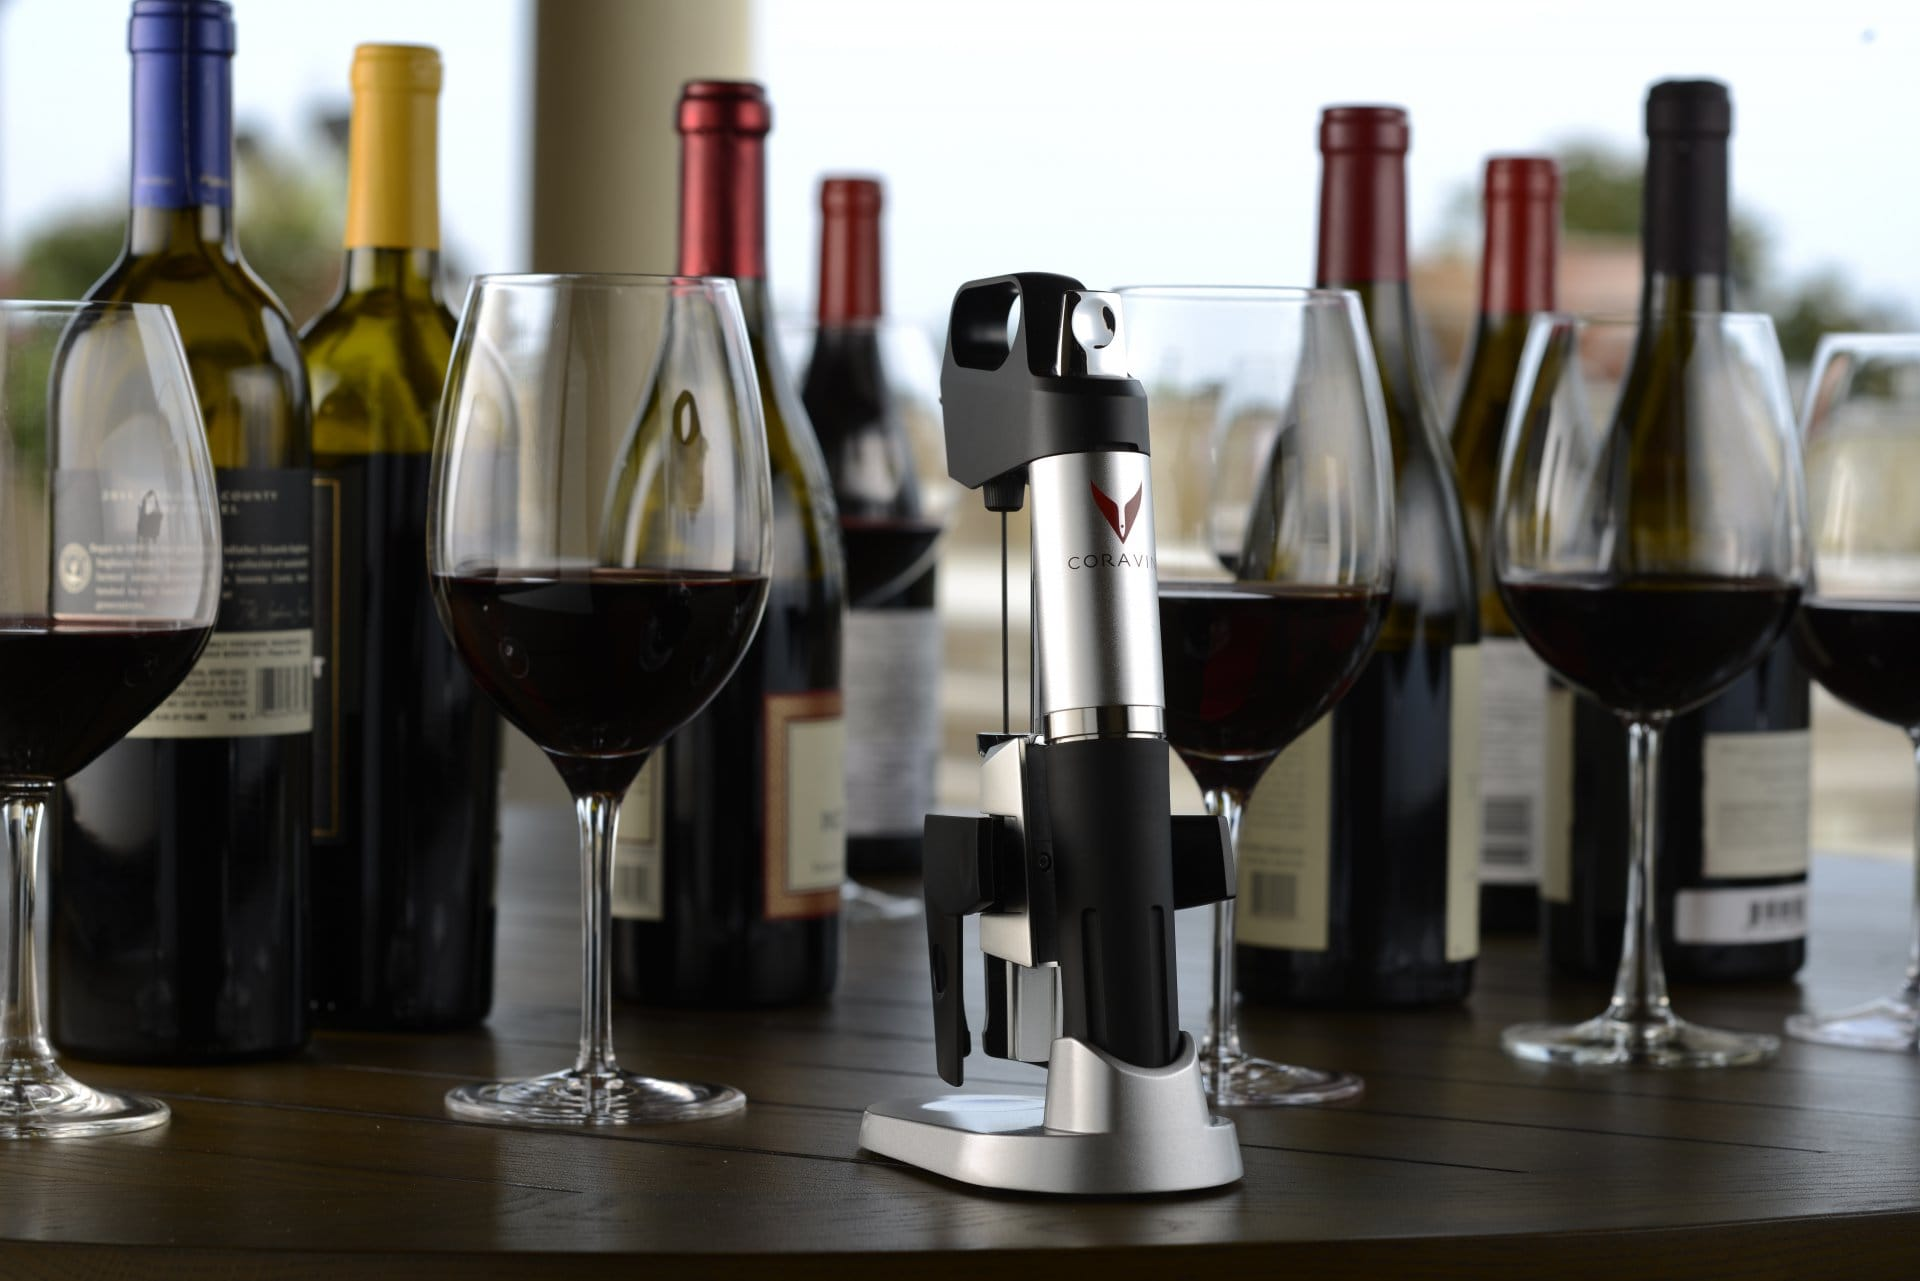 Coravin amongst wine glasses